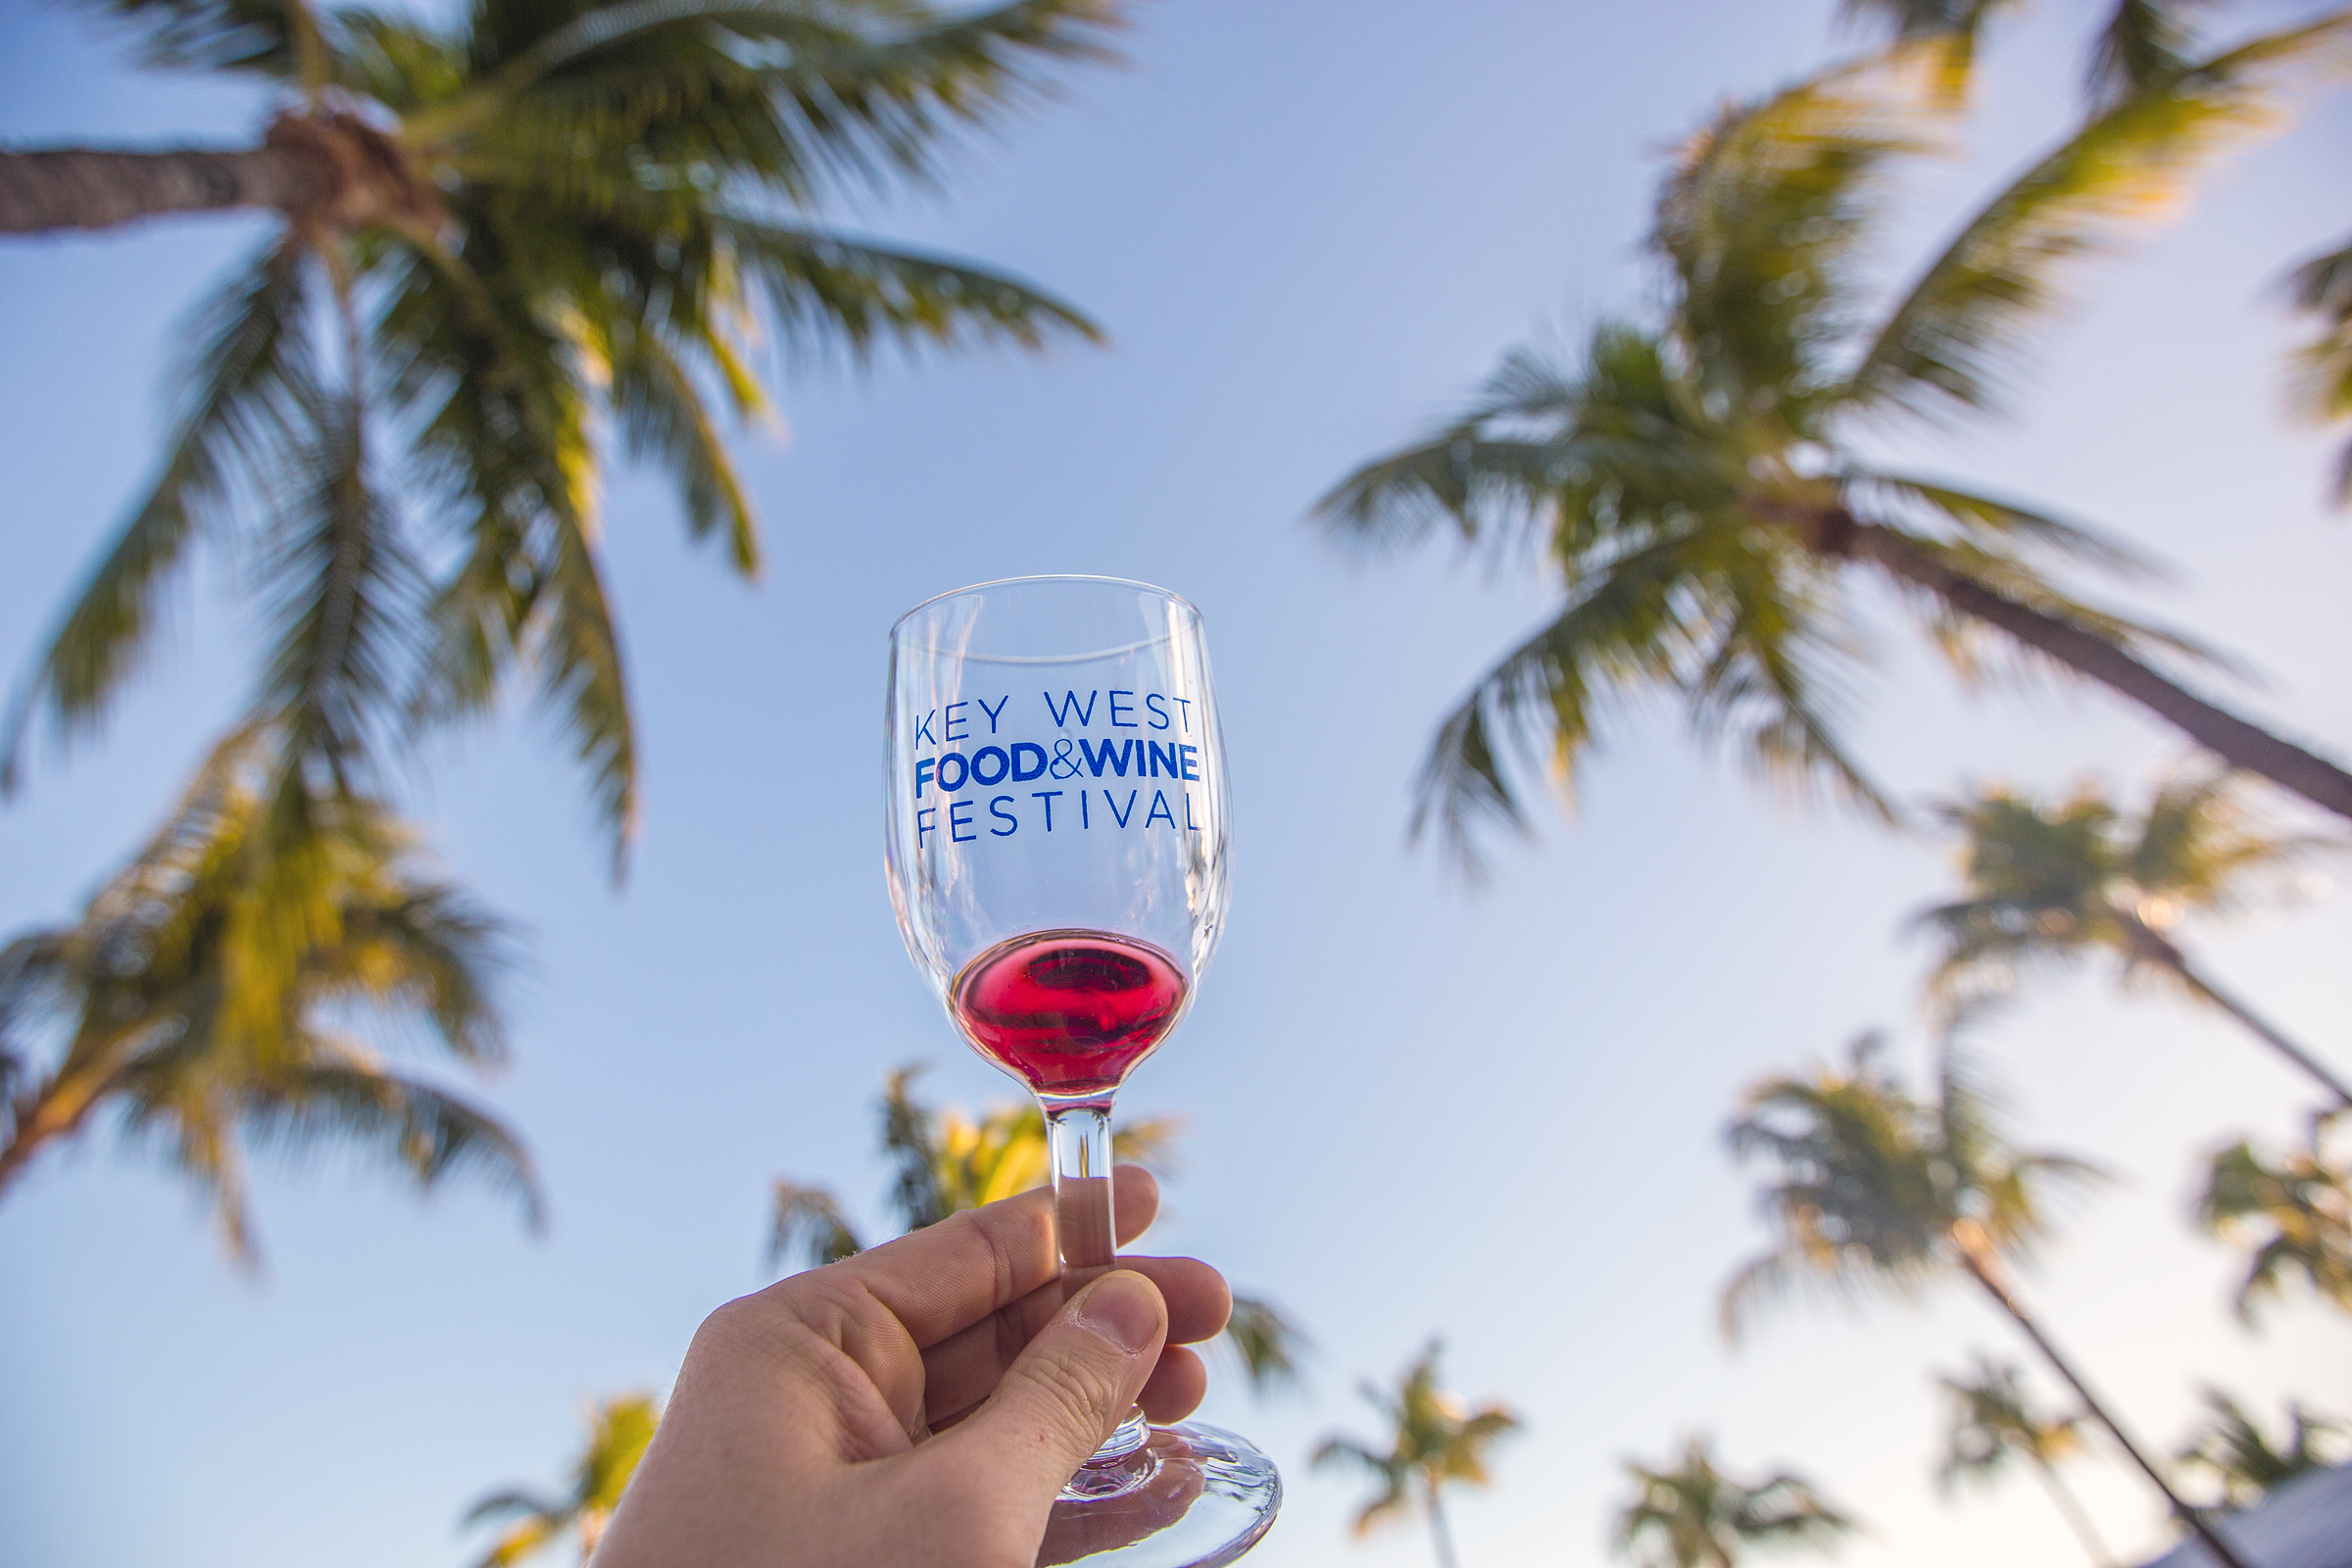 Key West Food & Wine Festival 2017